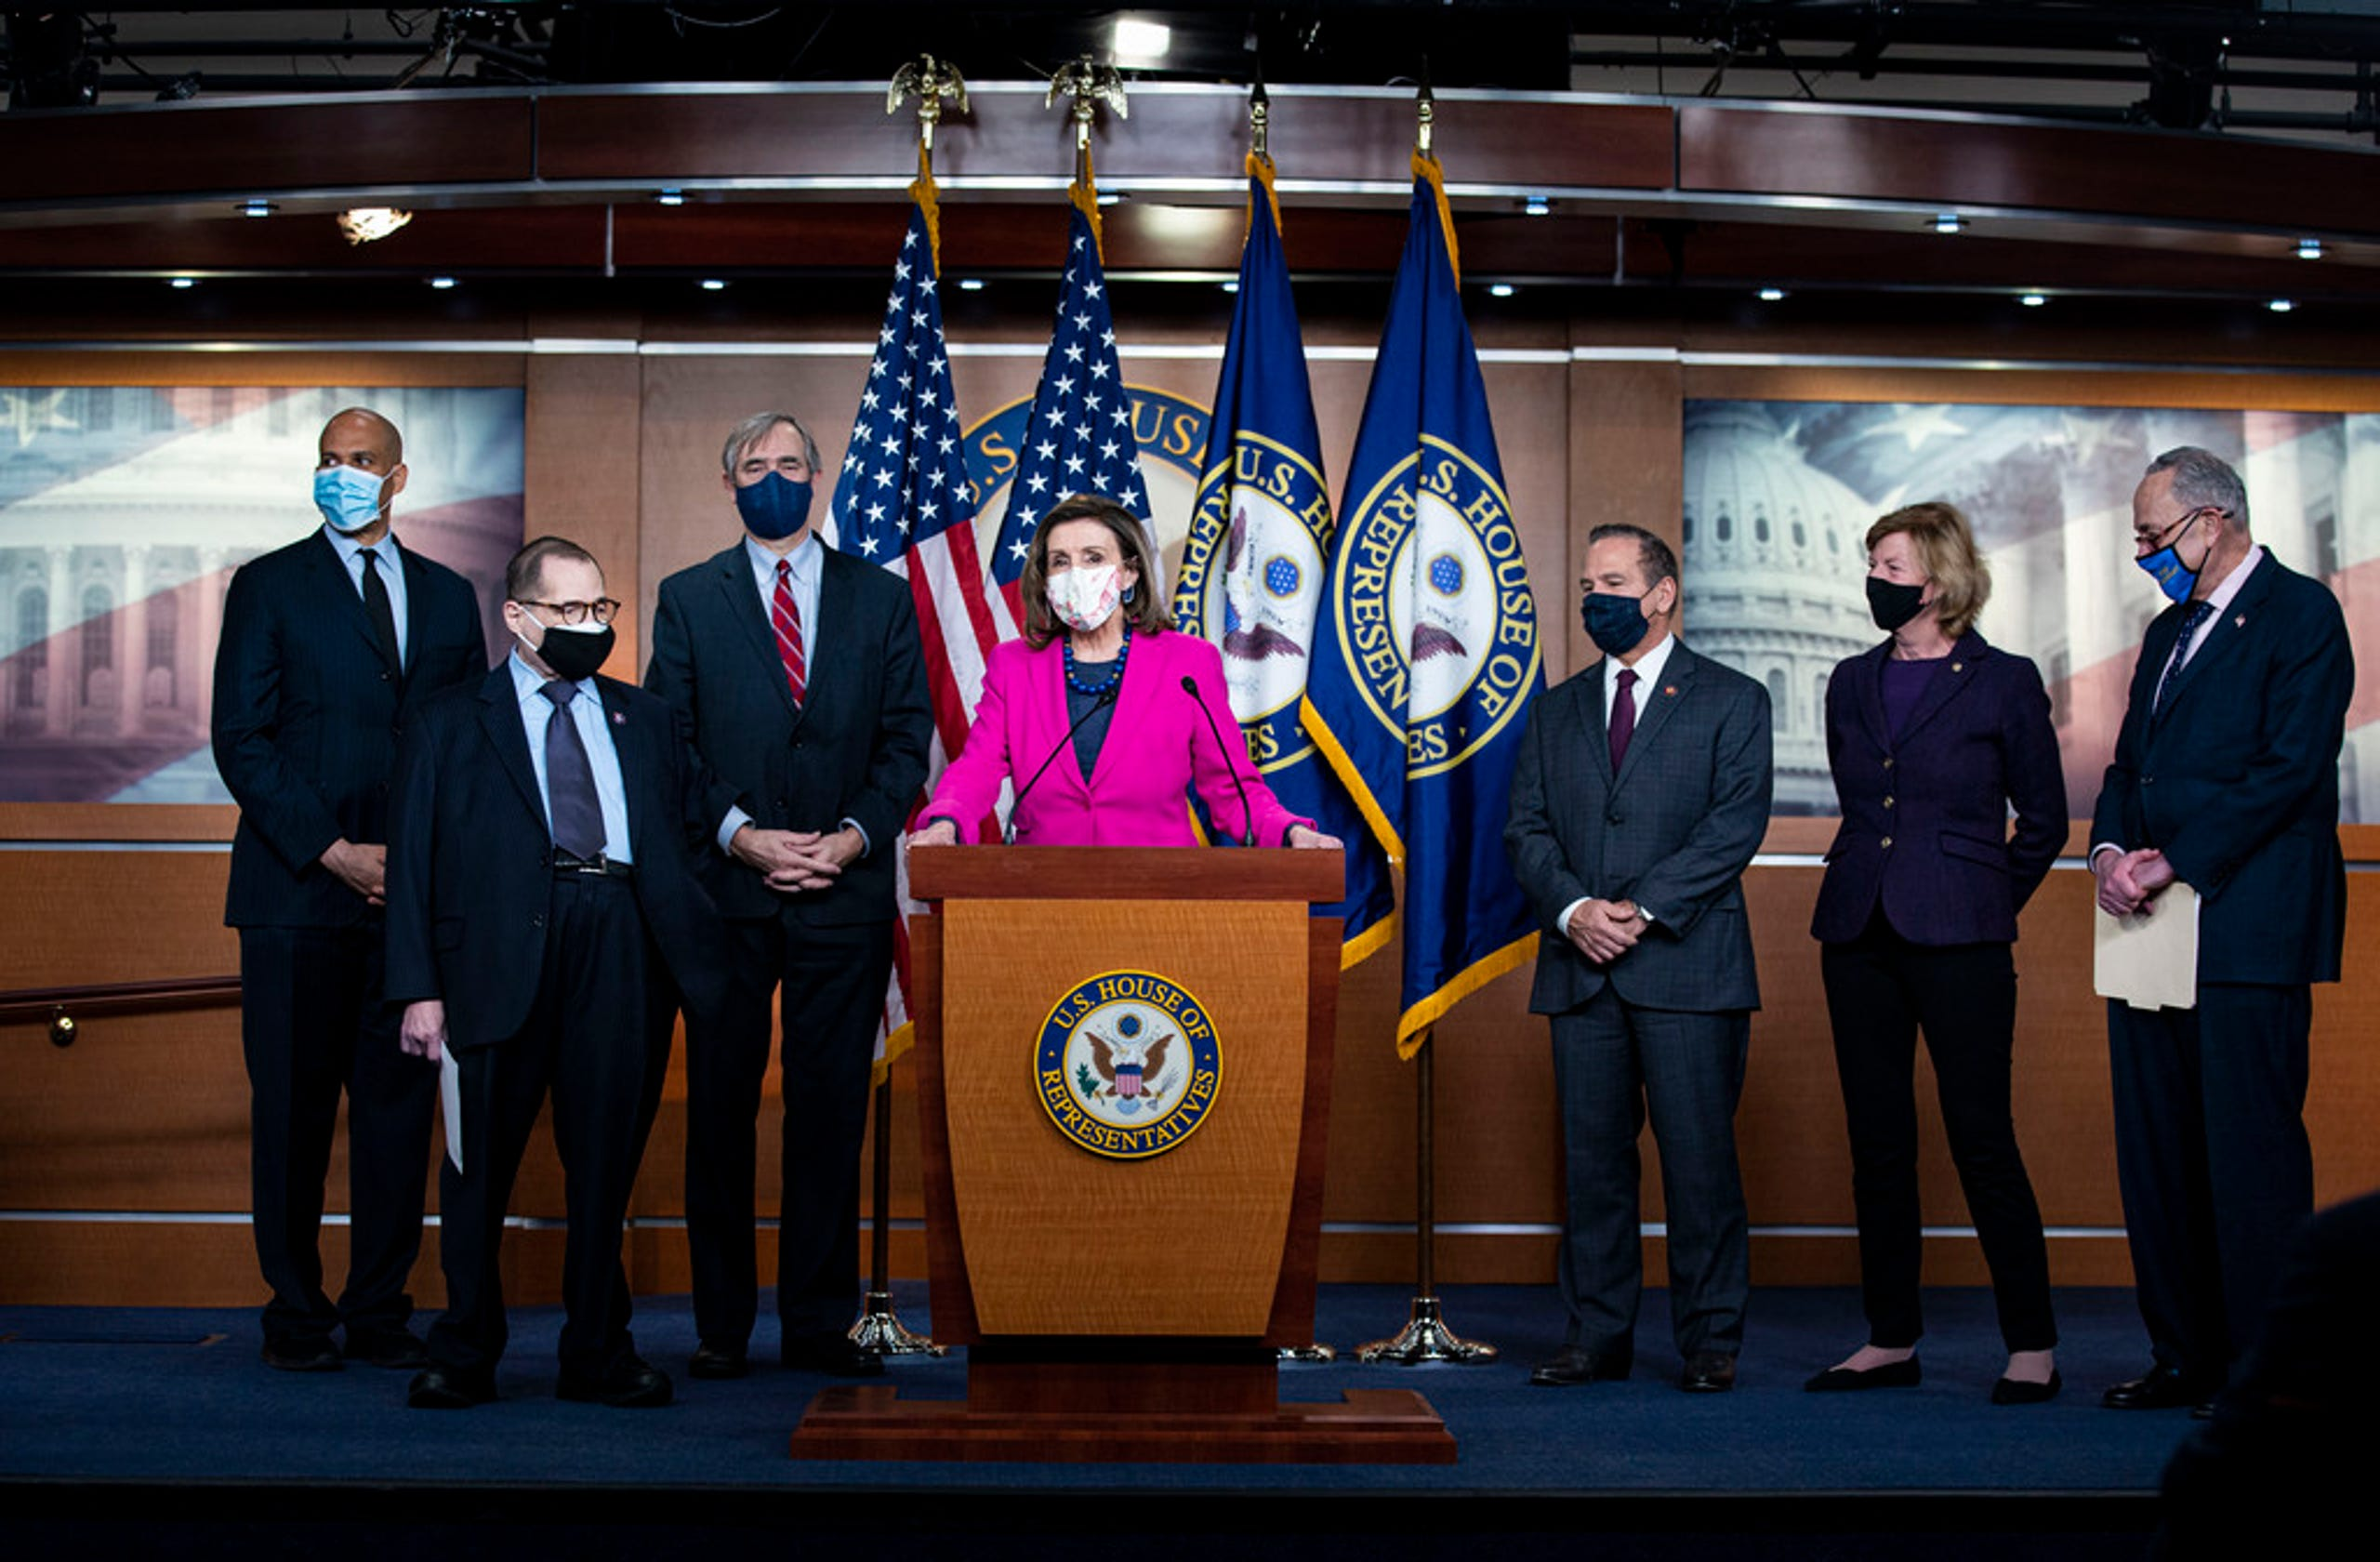 Speaker of the House Rep. Nancy Pelosi speaks during a news conference ahead of the House vote on the Equality Act on Capitol Hill on Feb. 25, 2021.